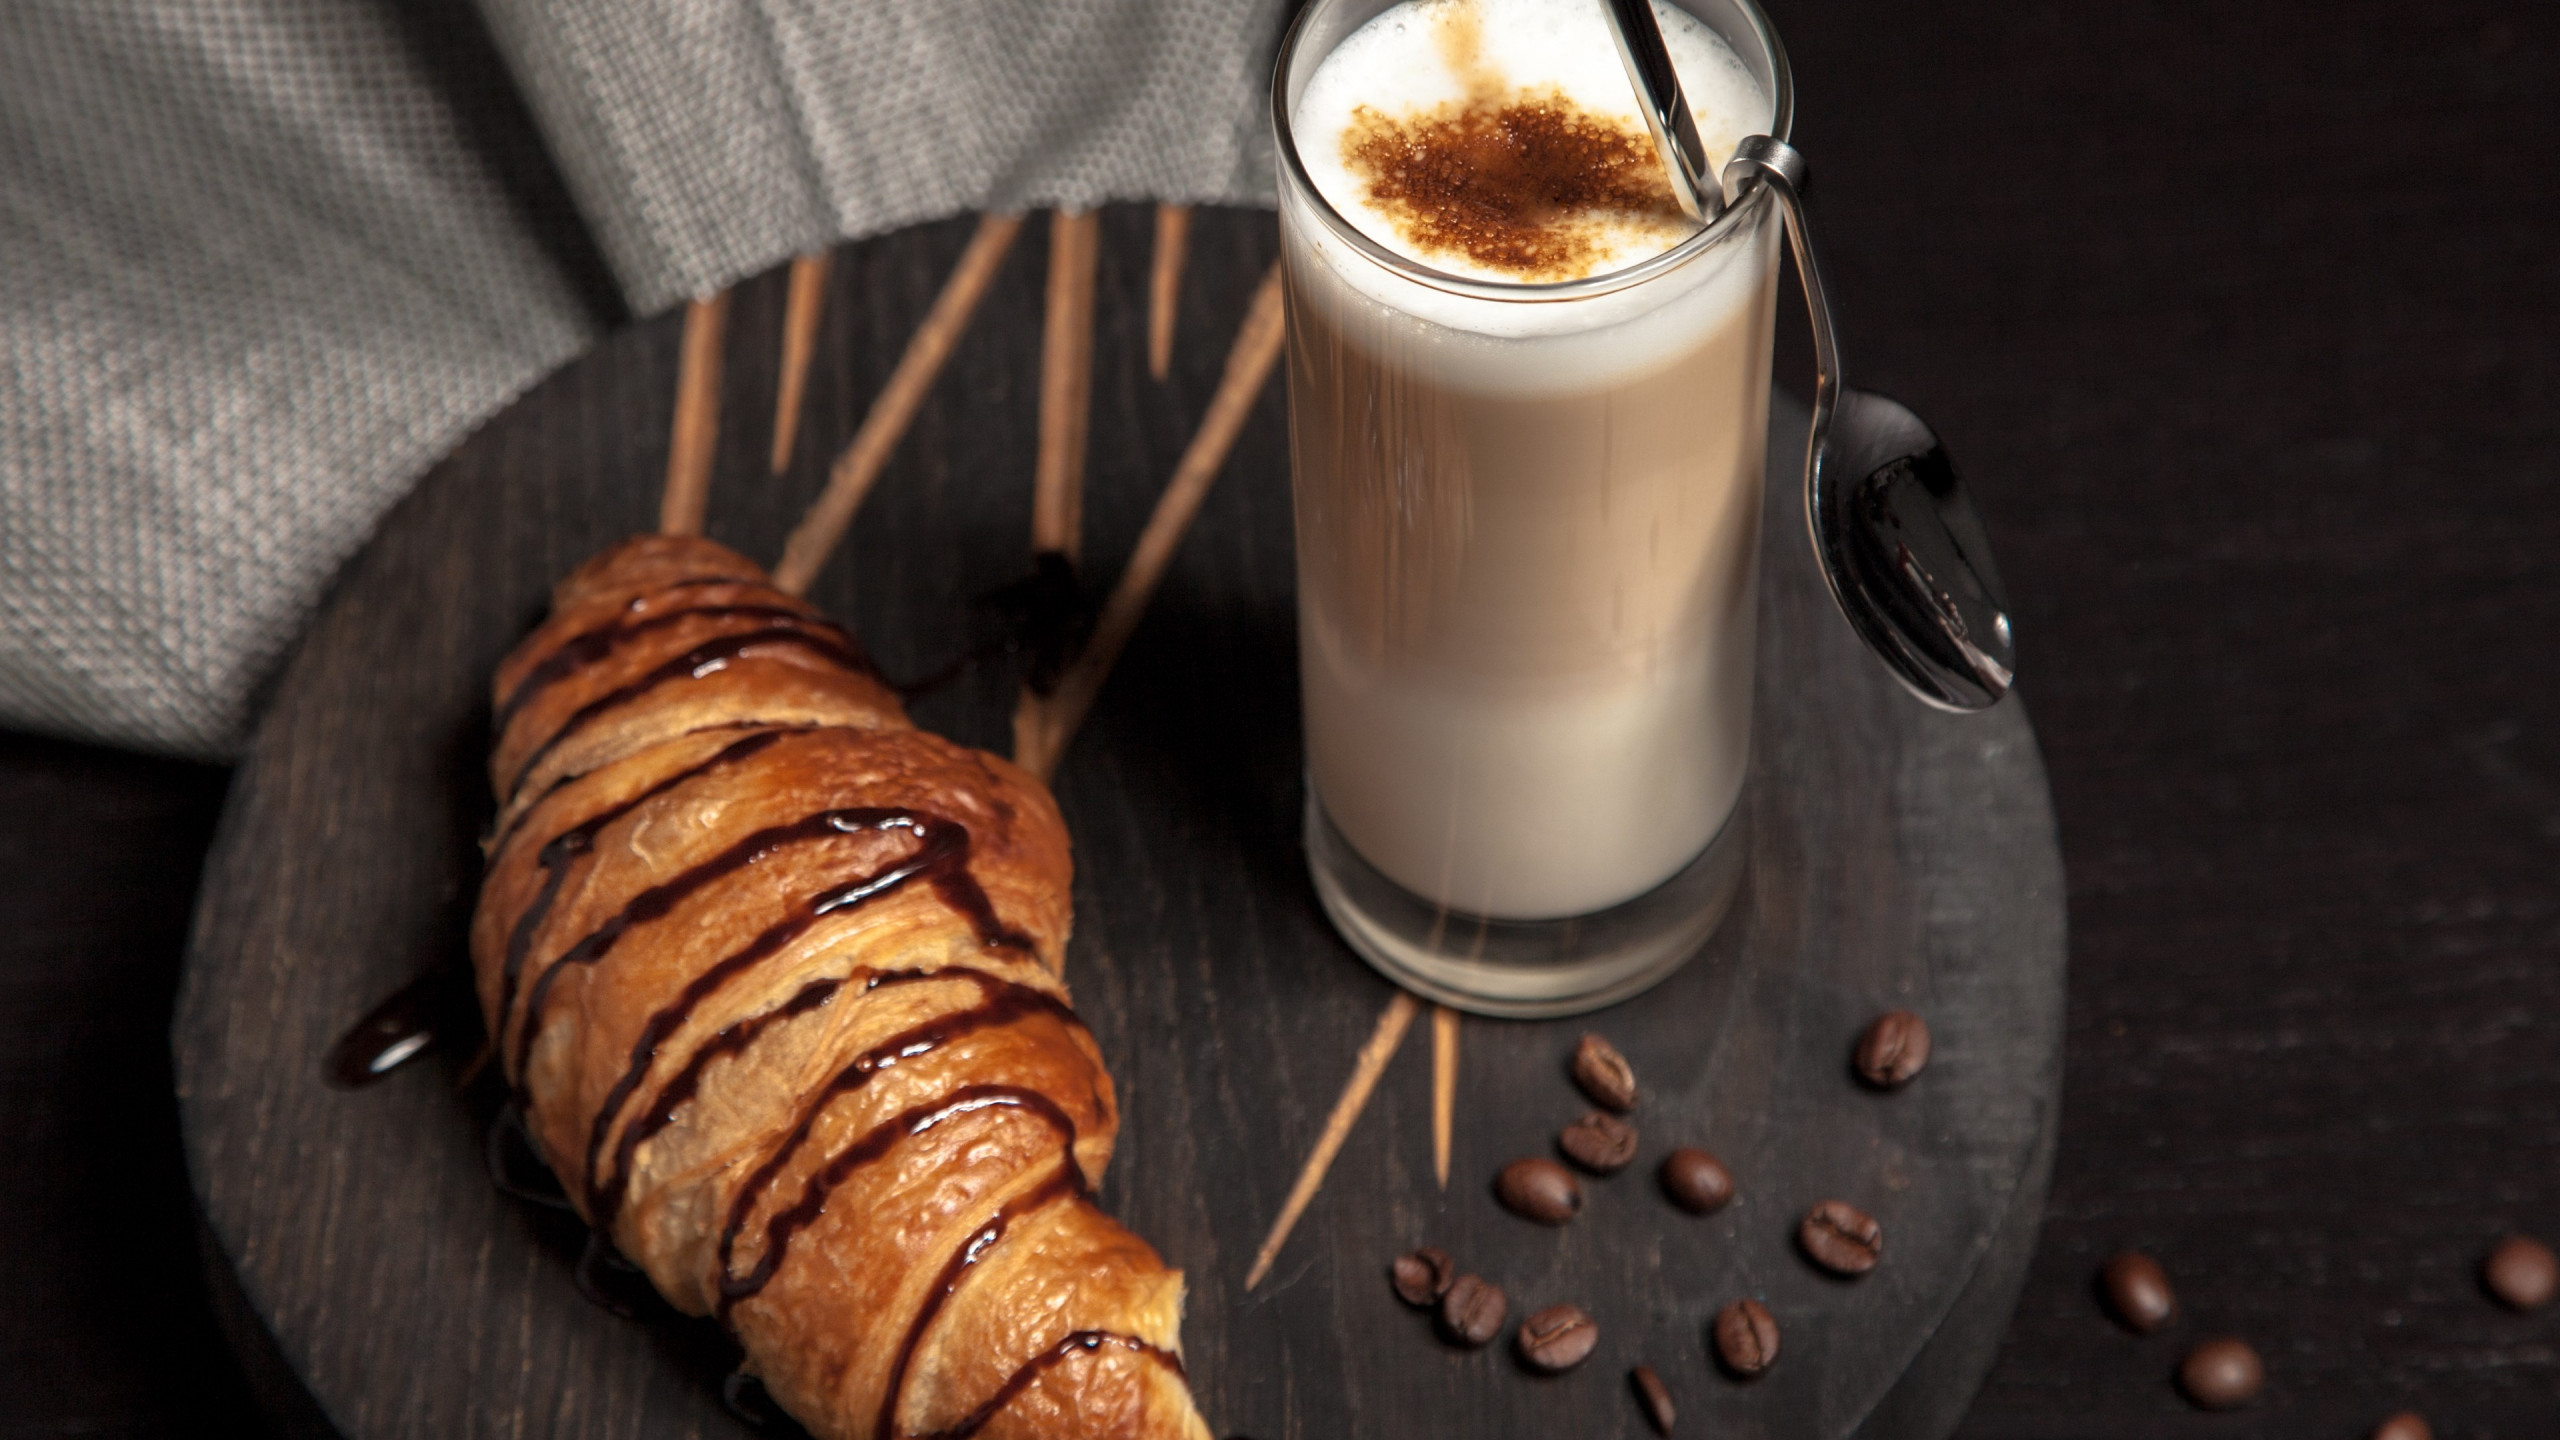 Cappuccino and chocolate croissant | 2560x1440 wallpaper